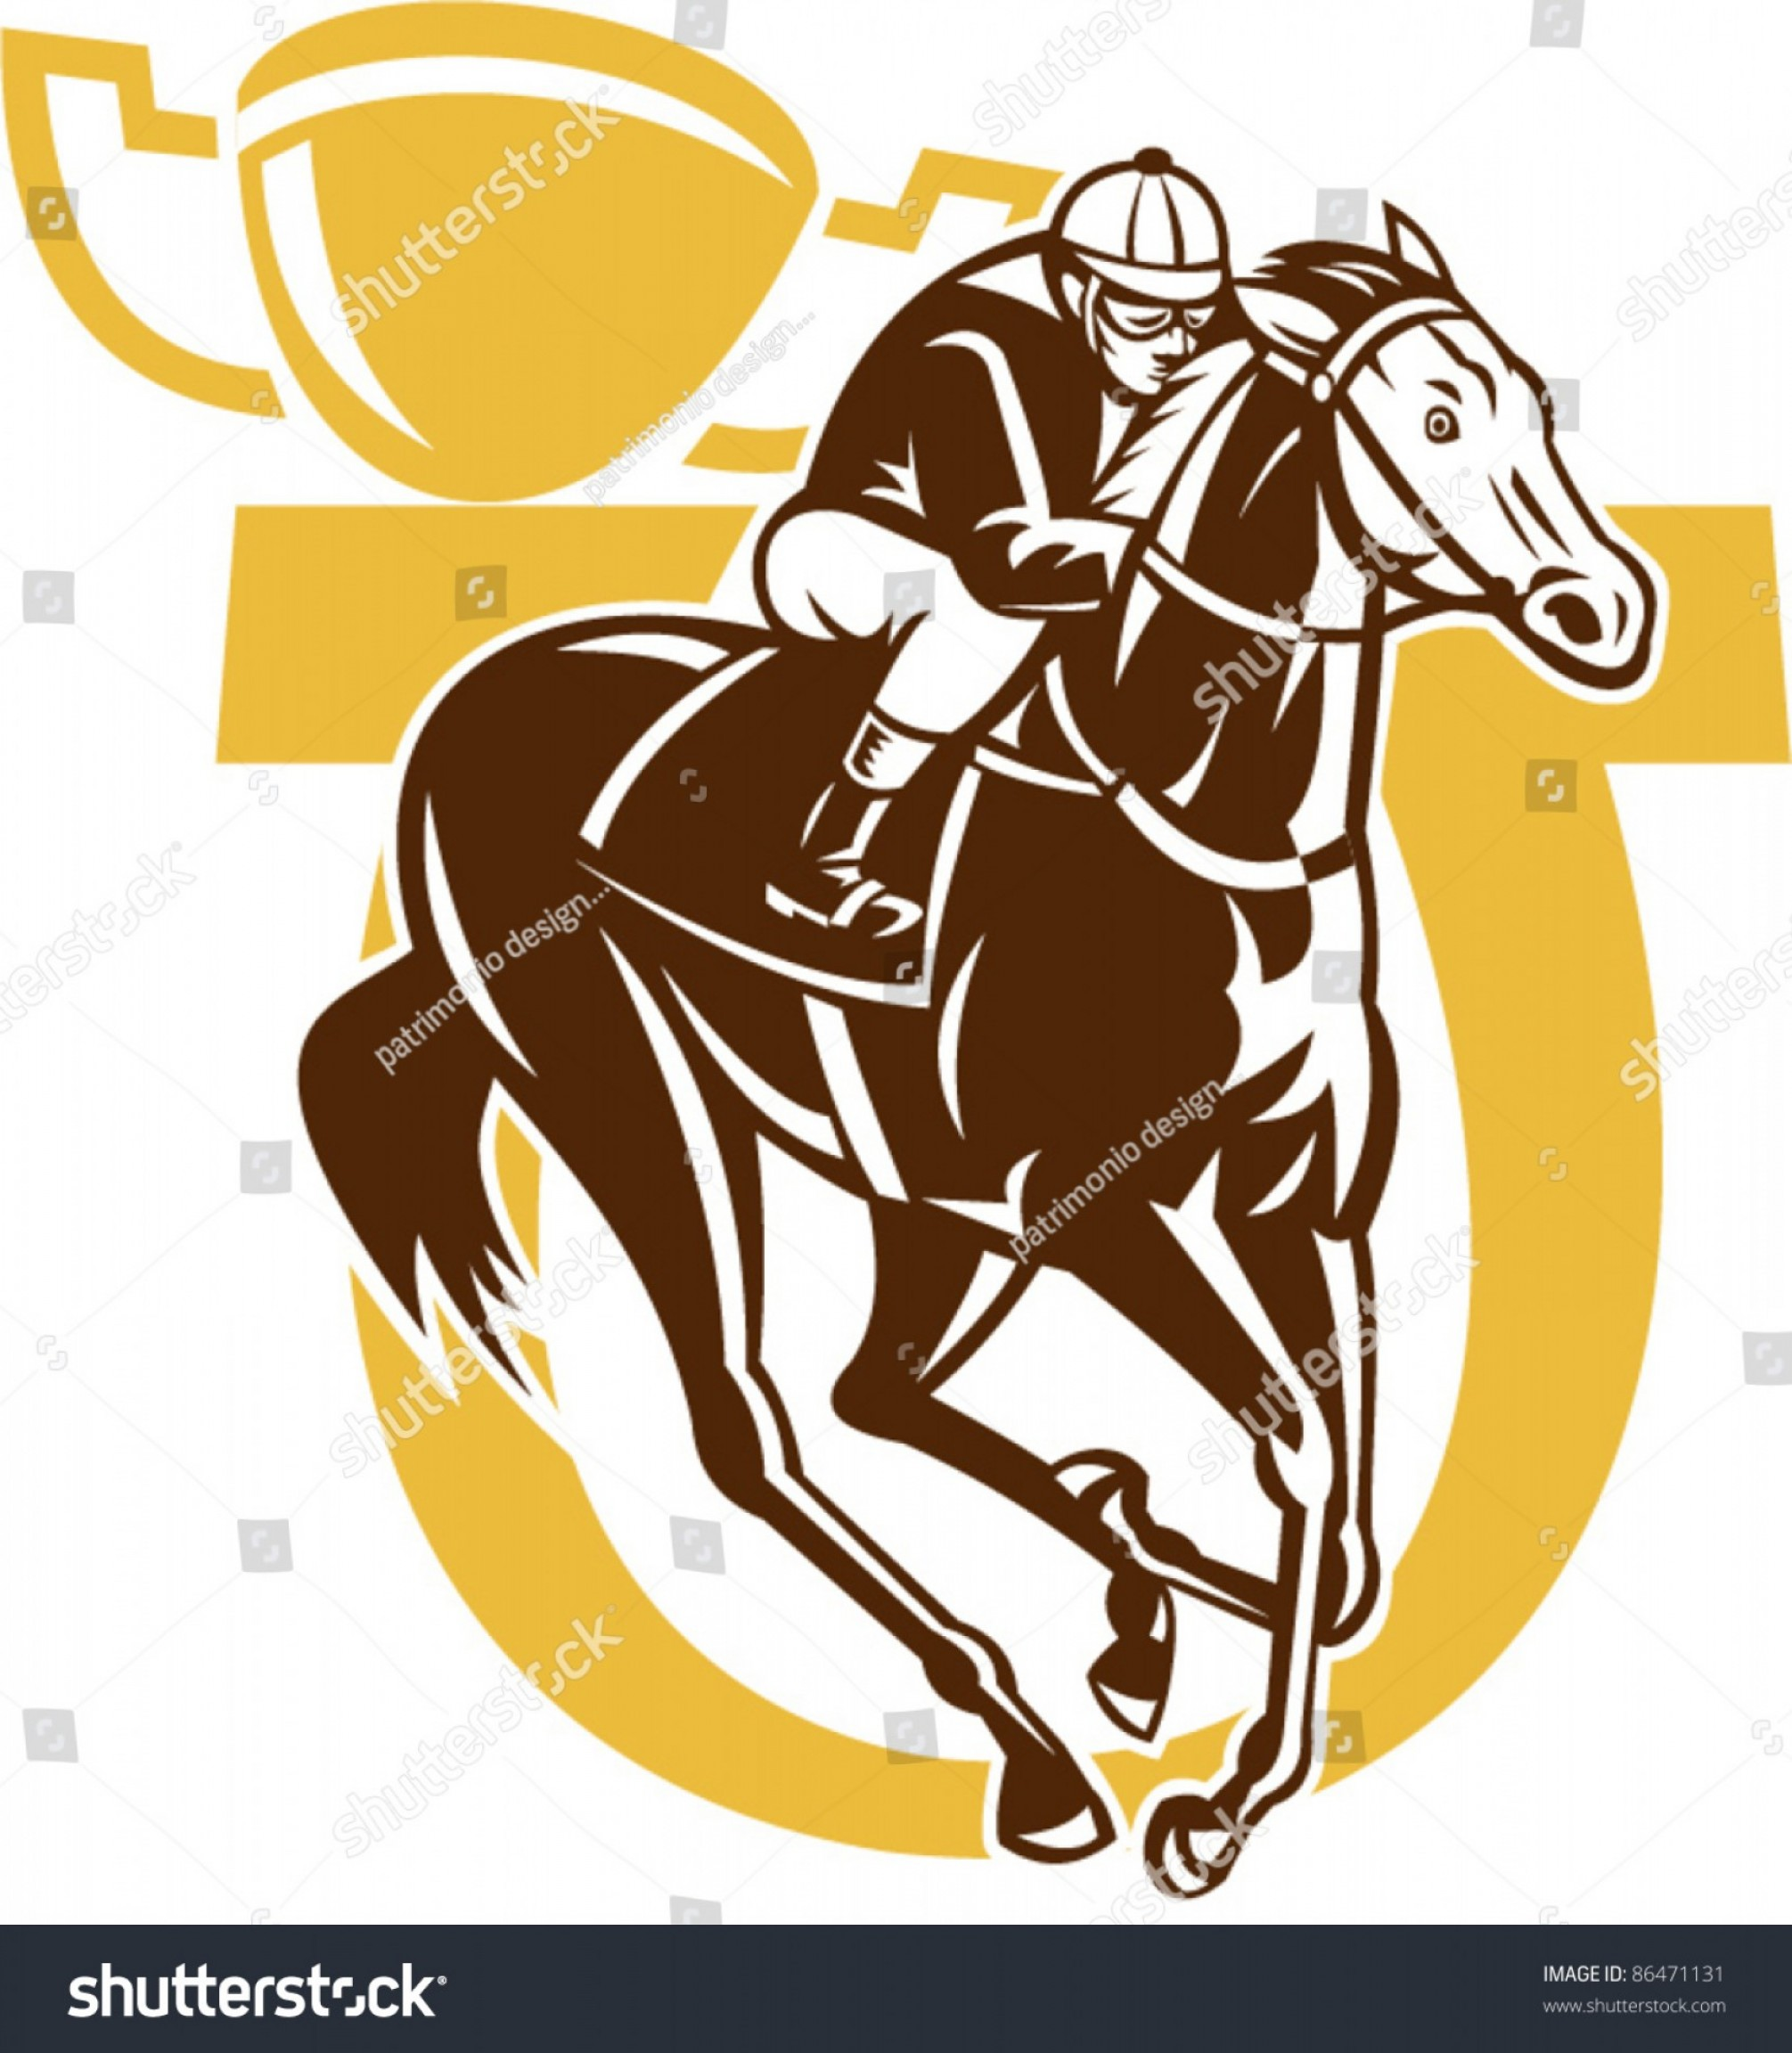 Barrel Racer Vector: Illustration Horse Racing Jockey Horseshoe Champion